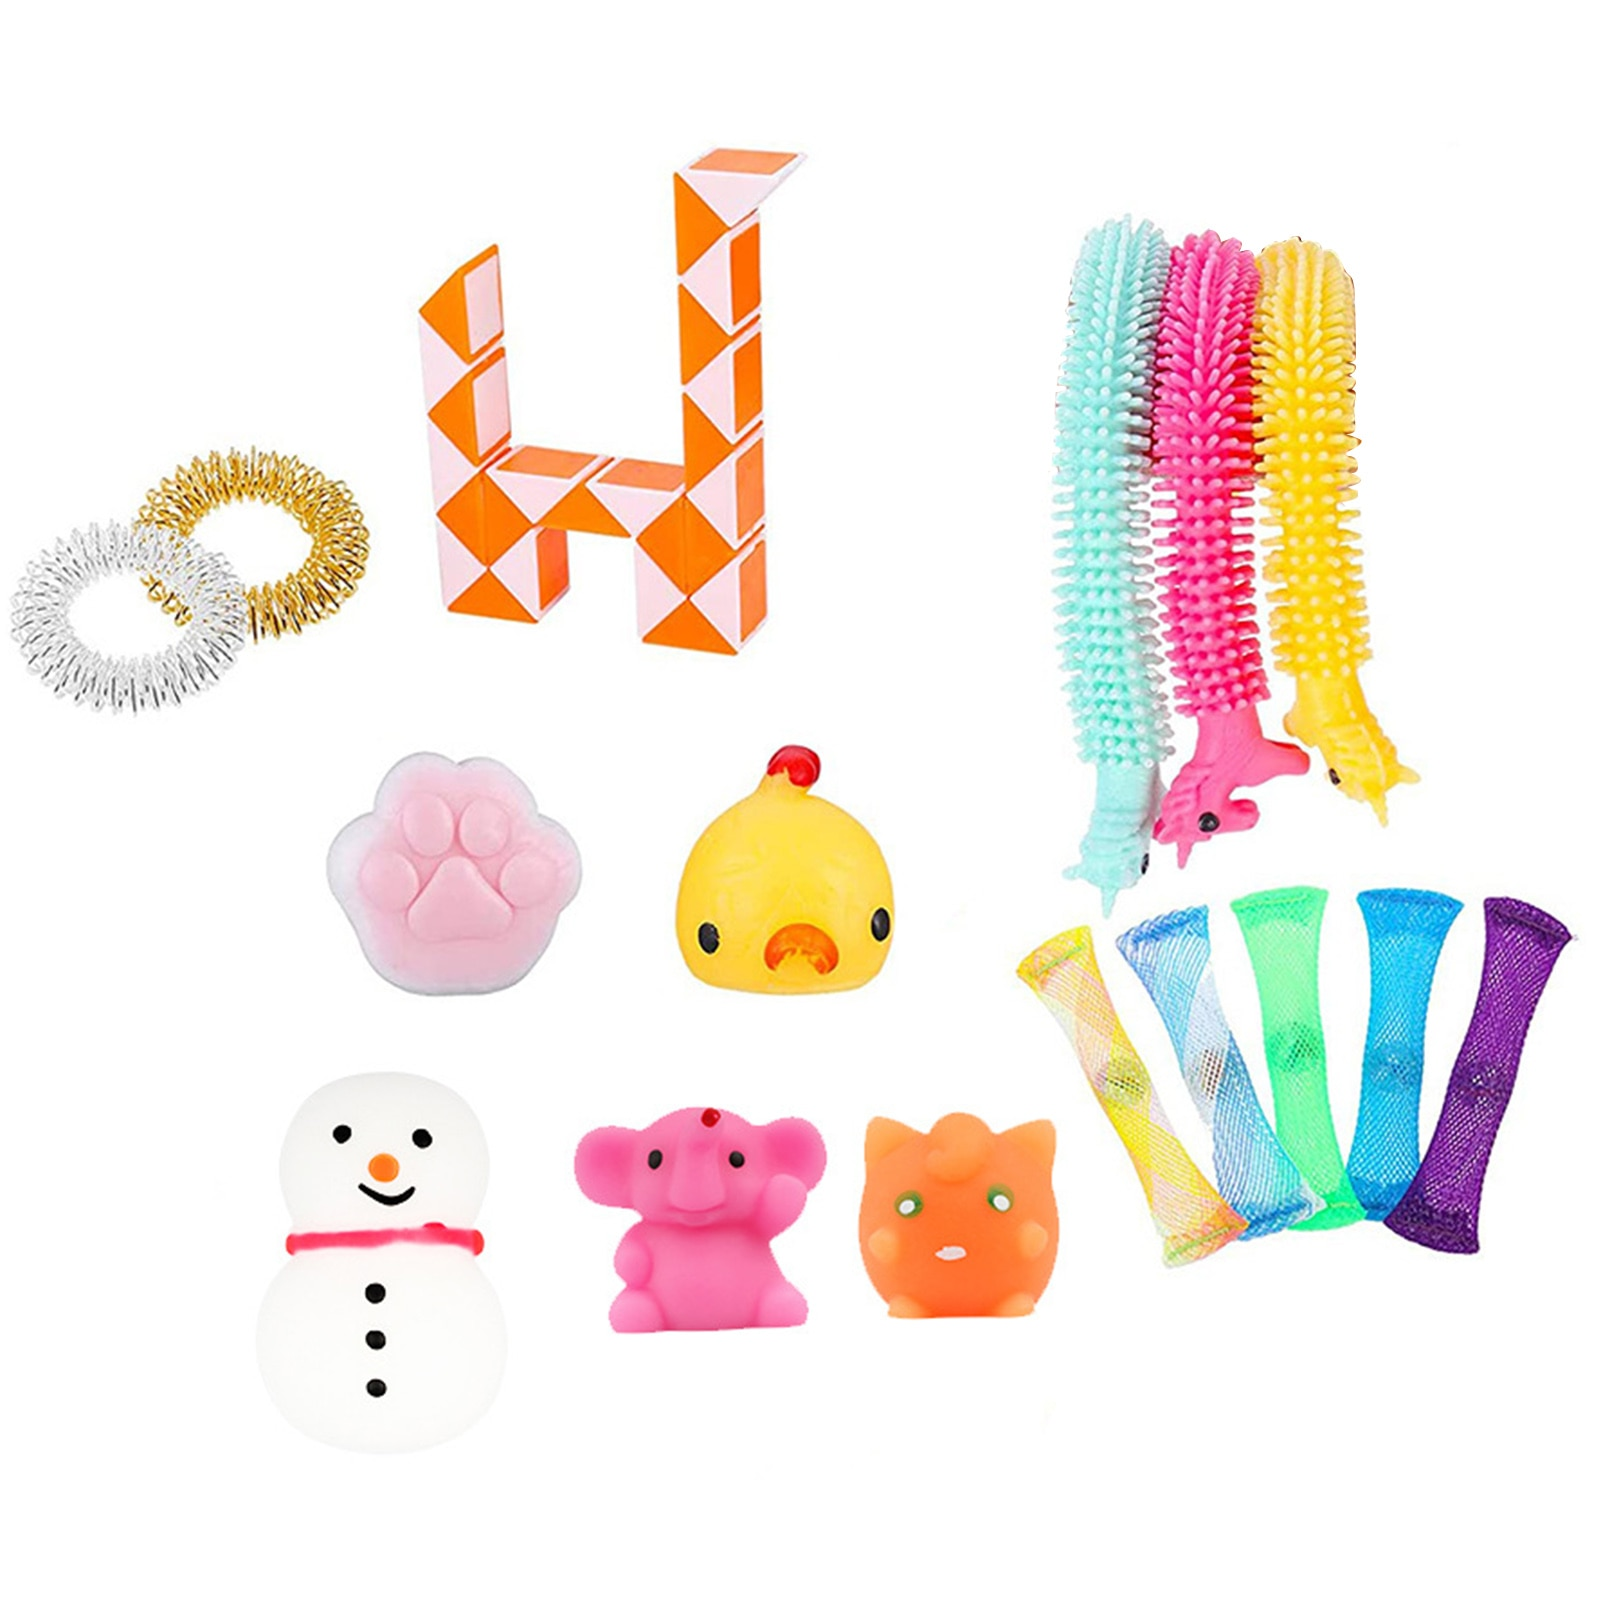 Stress Relief Hand Toys Sensory Squeeze Toy Set For Kids Adults Made Of Food Grade Silica Gel And ABS enlarge